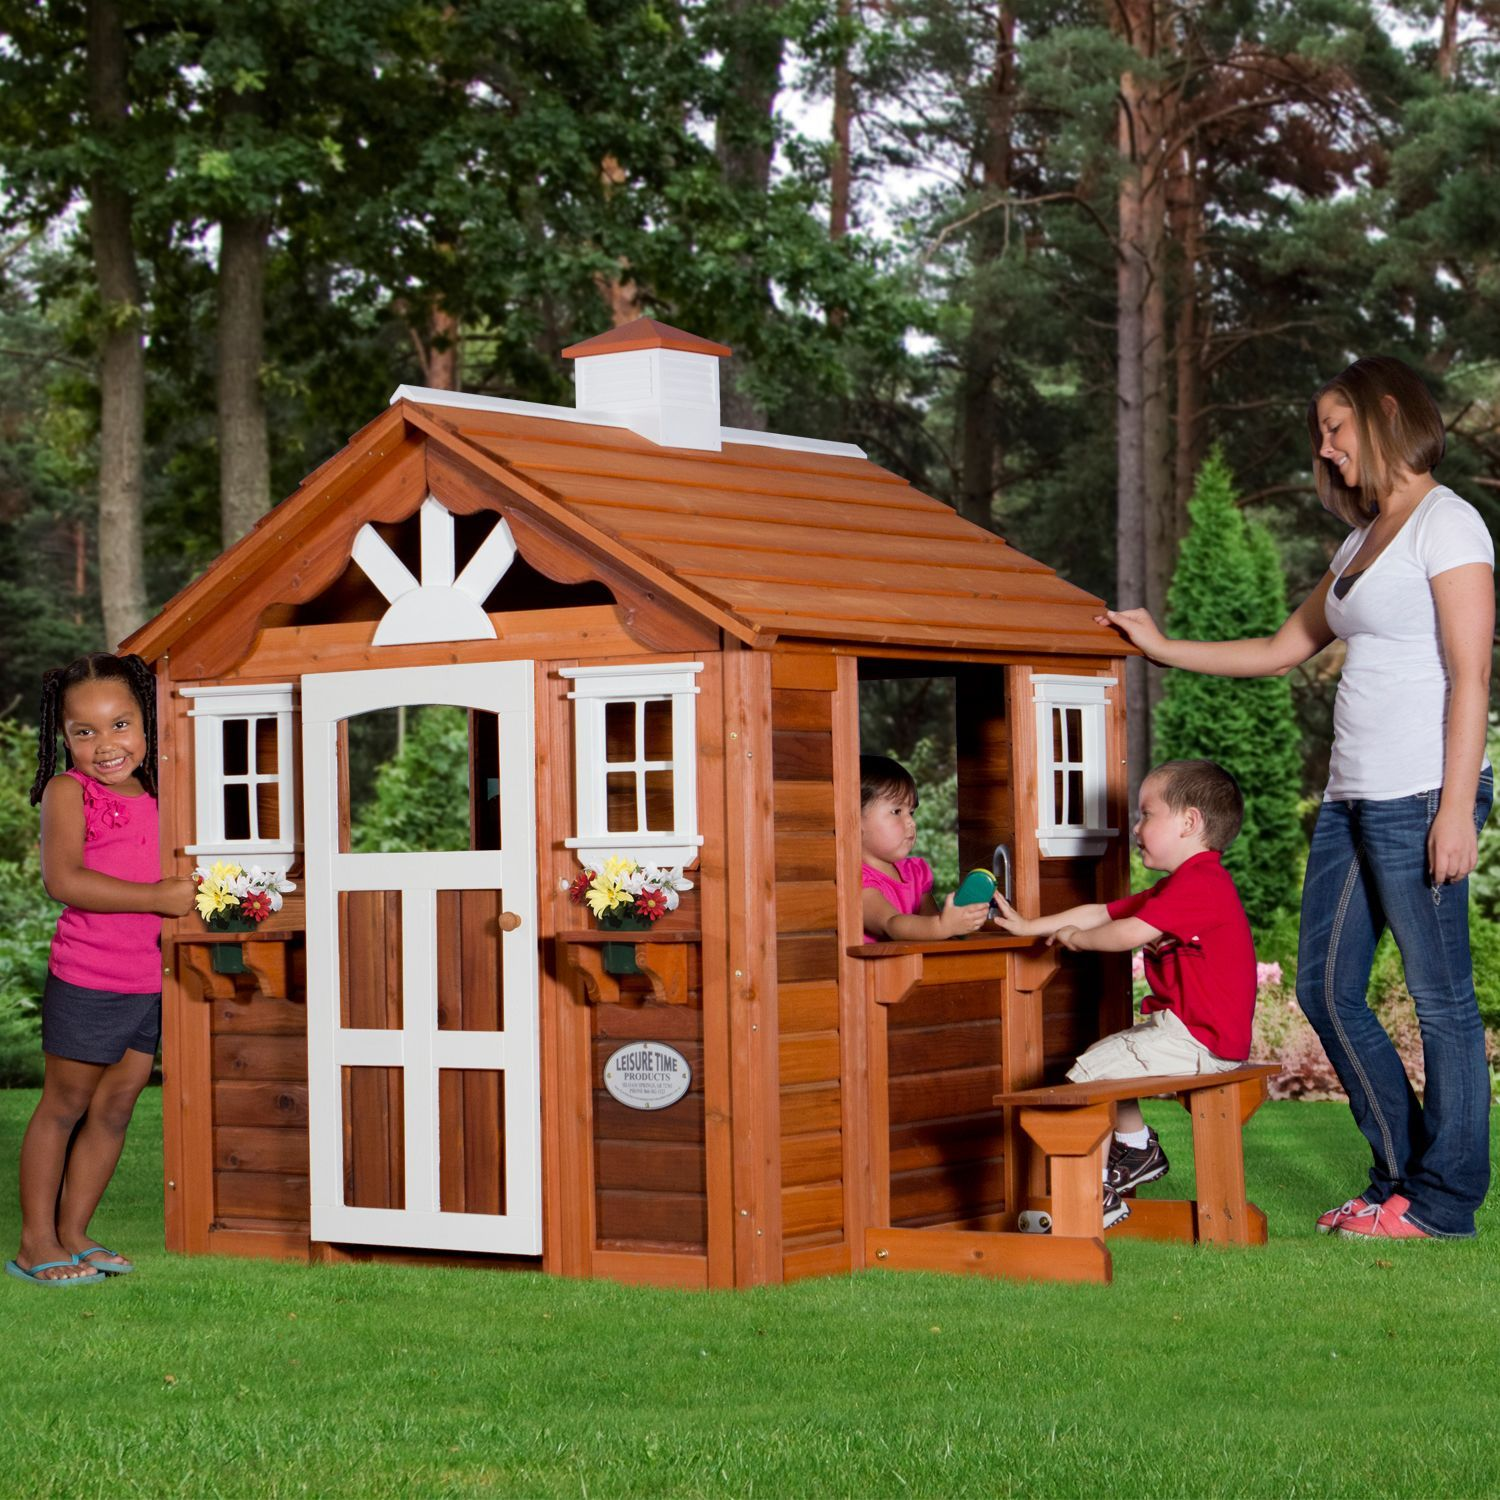 children playhouse kids play fun outdoor garden log cabin